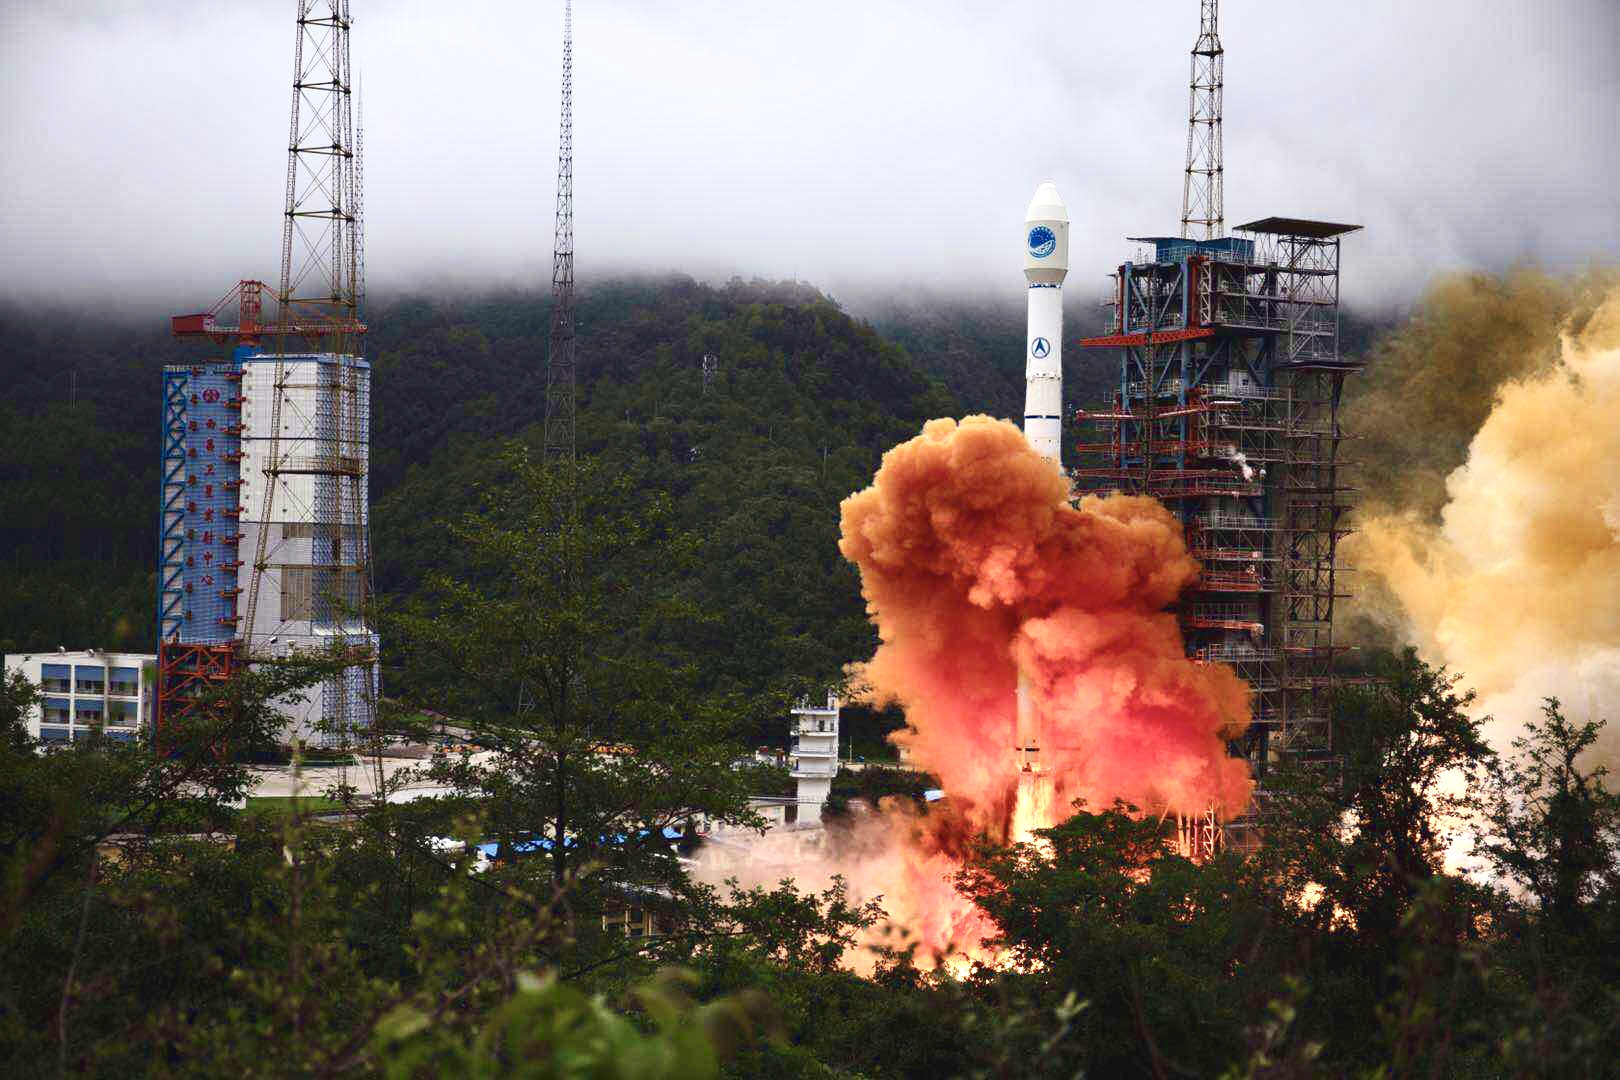 https://news.cgtn.com/news/2020-06-23/China-launches-last-BeiDou-navigation-system-satellite--Ry9yn9DrFK/img/be66cbdc93934990b6e00553653eba82/be66cbdc93934990b6e00553653eba82.jpeg